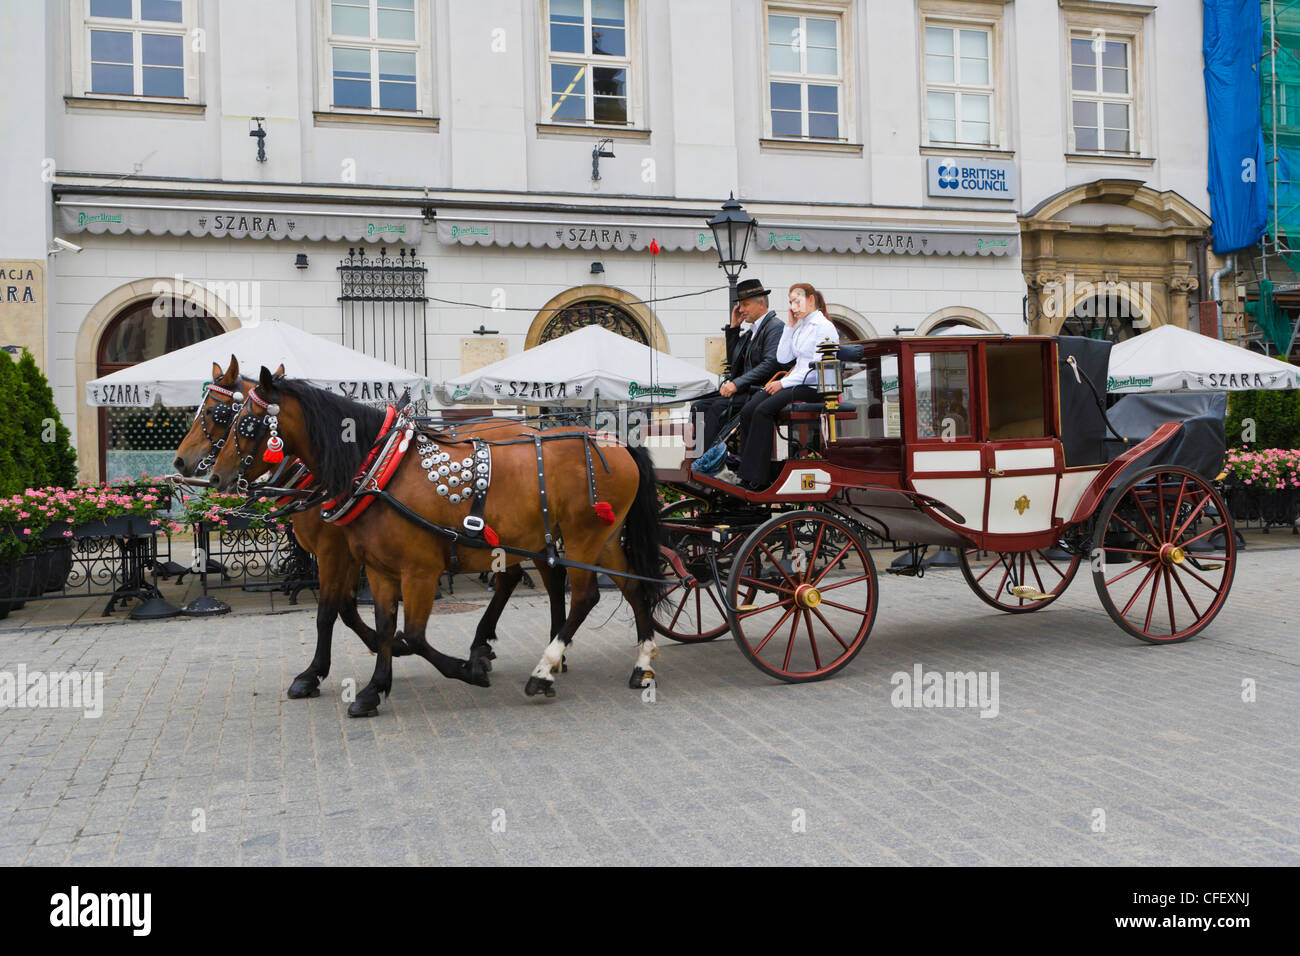 Horse drawn carriages, Main Market Square, Old Town, Krakow, Cracow, Malopolska Province, Lesser Poland Voivodeship, - Stock Image